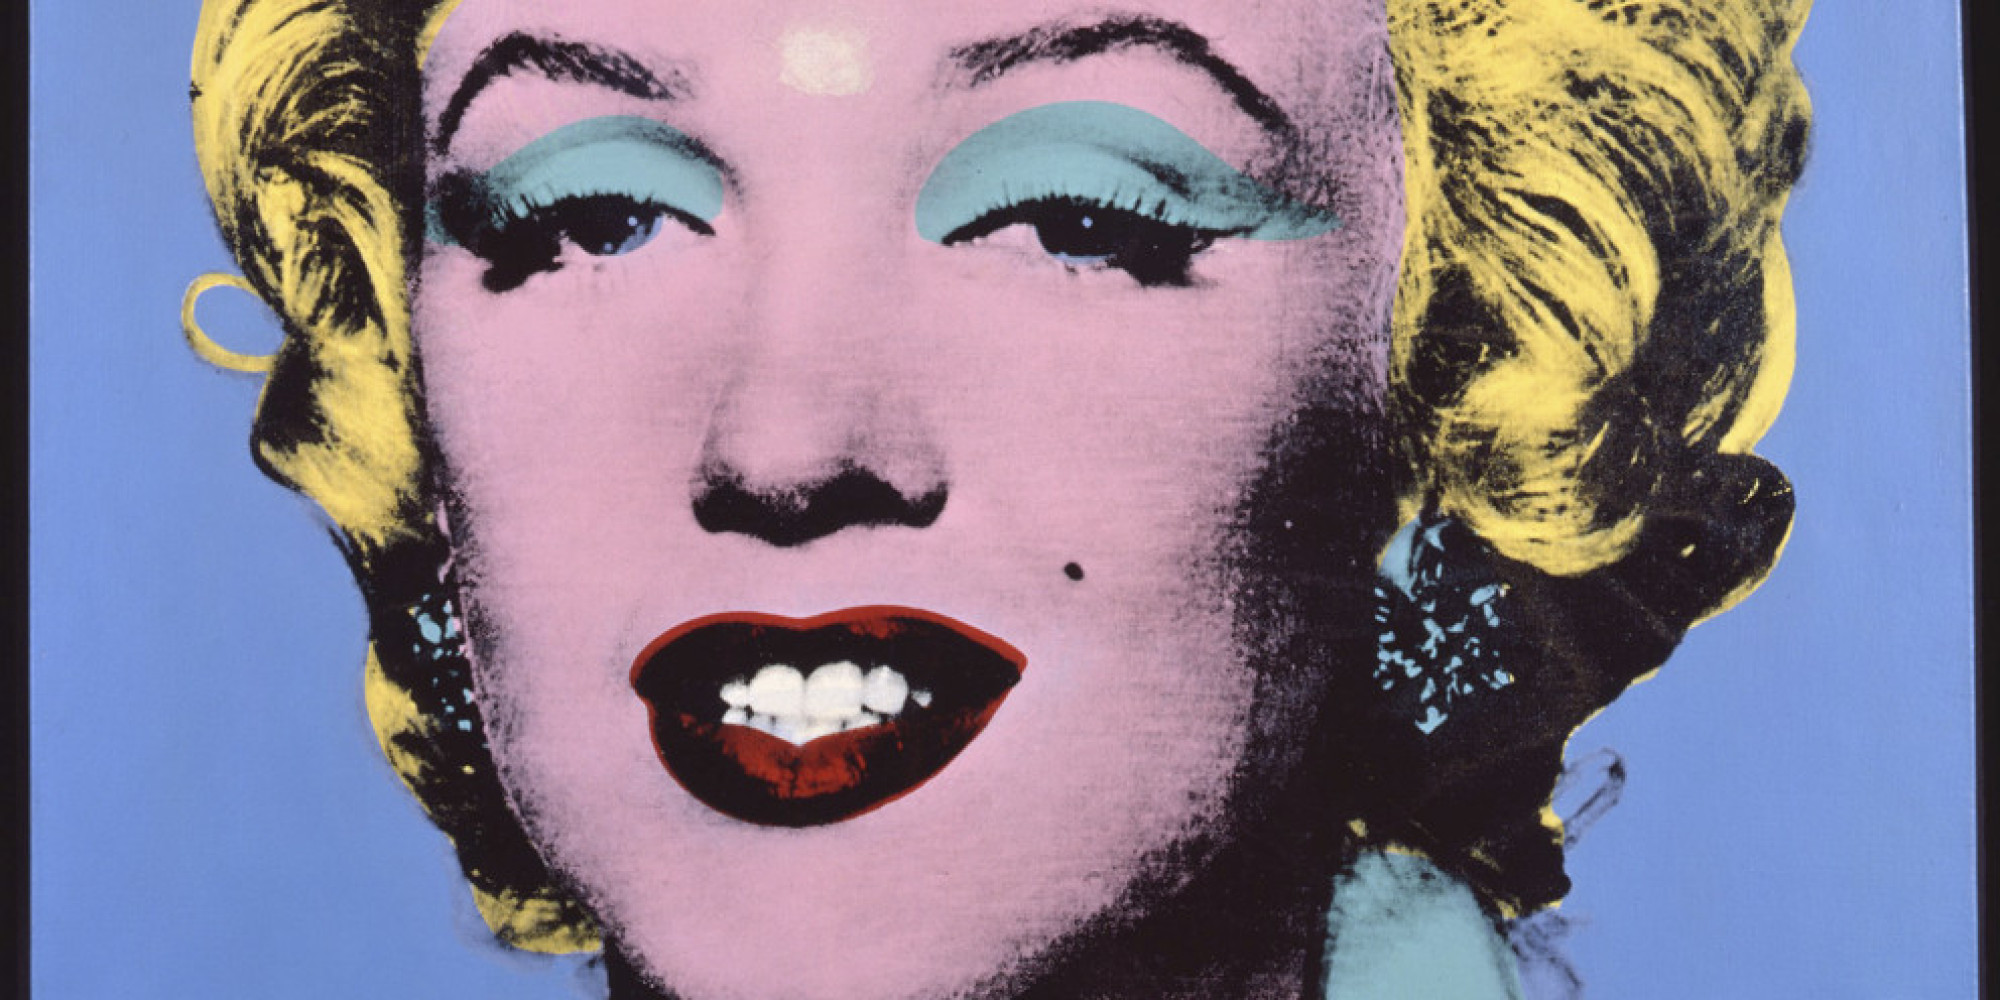 andy warhol images - 583×404